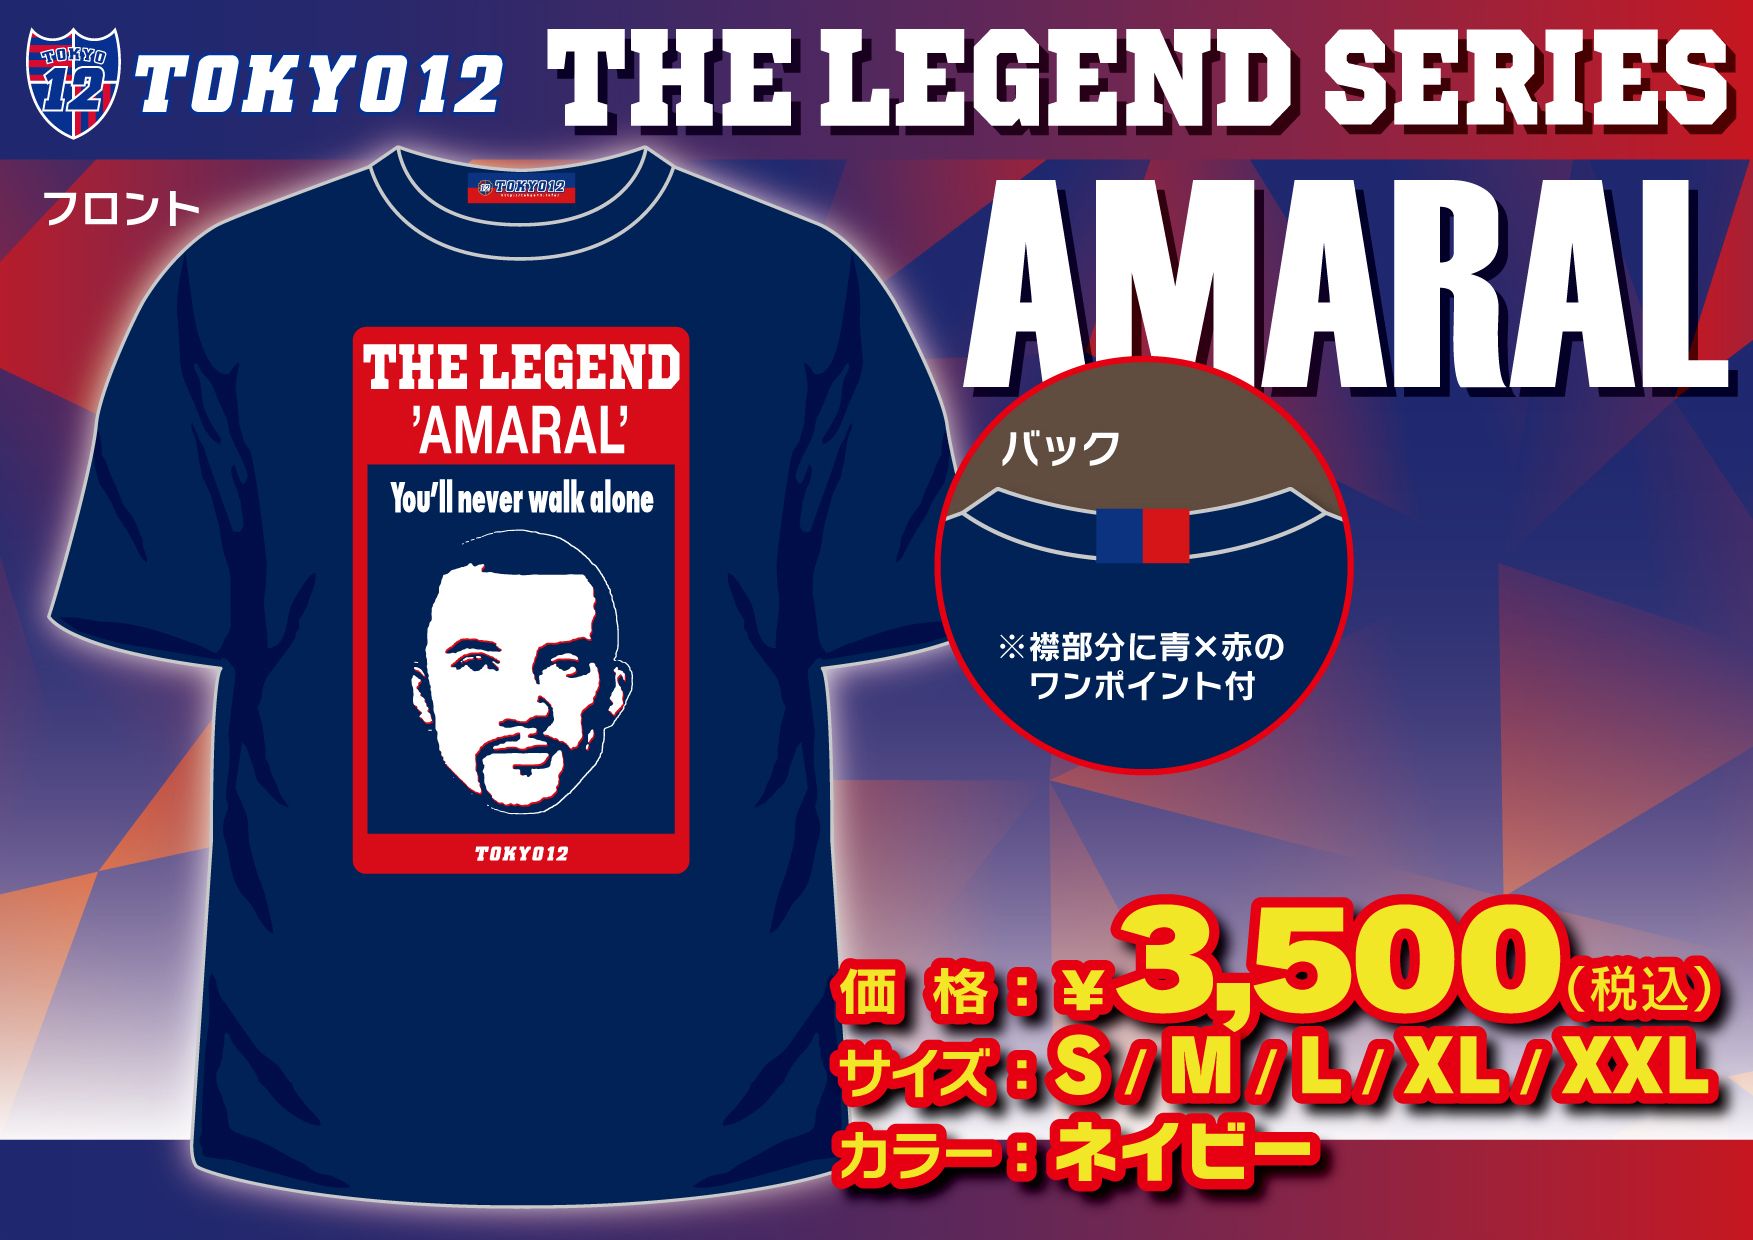 THE LEGEND SERIES AMARAL Tシャツ